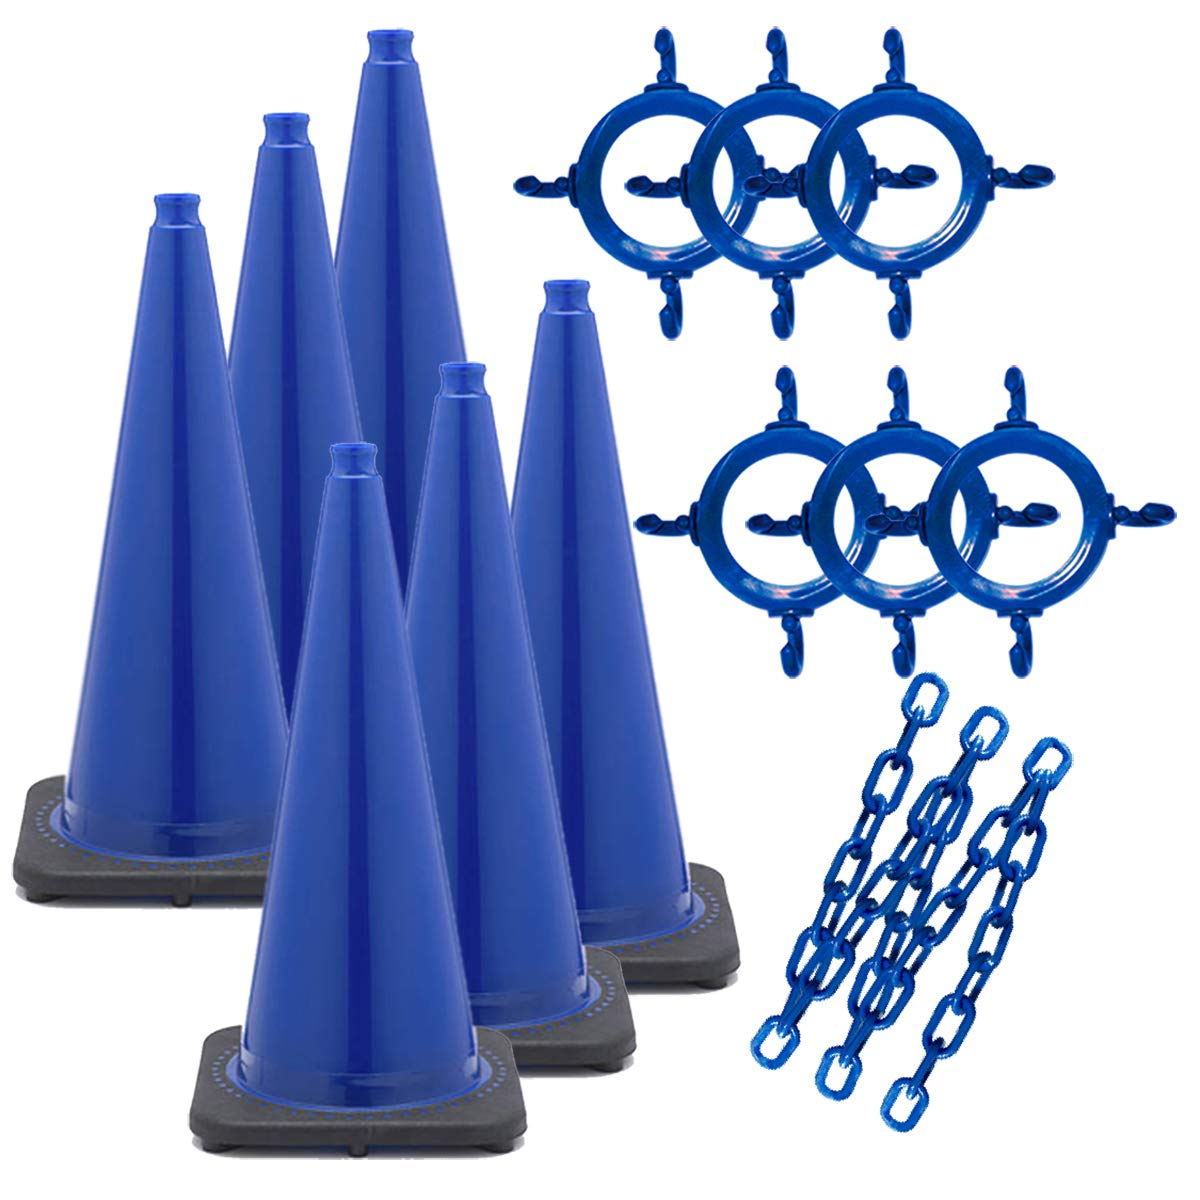 Mr. Chain Traffic Cone and Chain Kit, Blue, 28-Inch Height (93206-6) by Mr. Chain